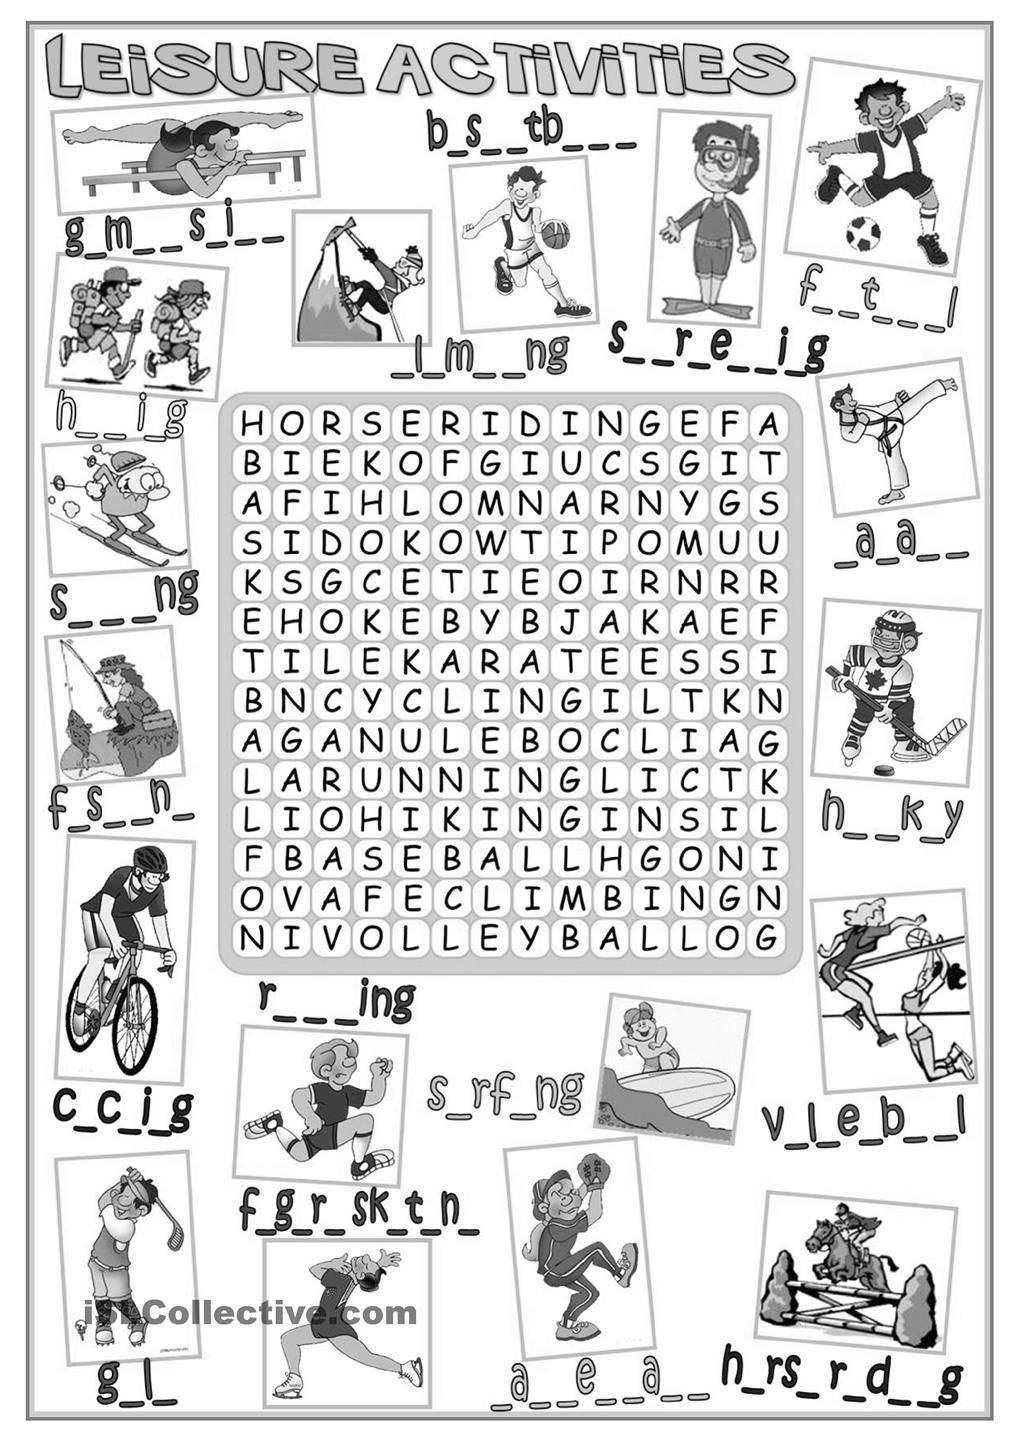 Leisure activities - wordsearch | English worksheets | Pinterest ...